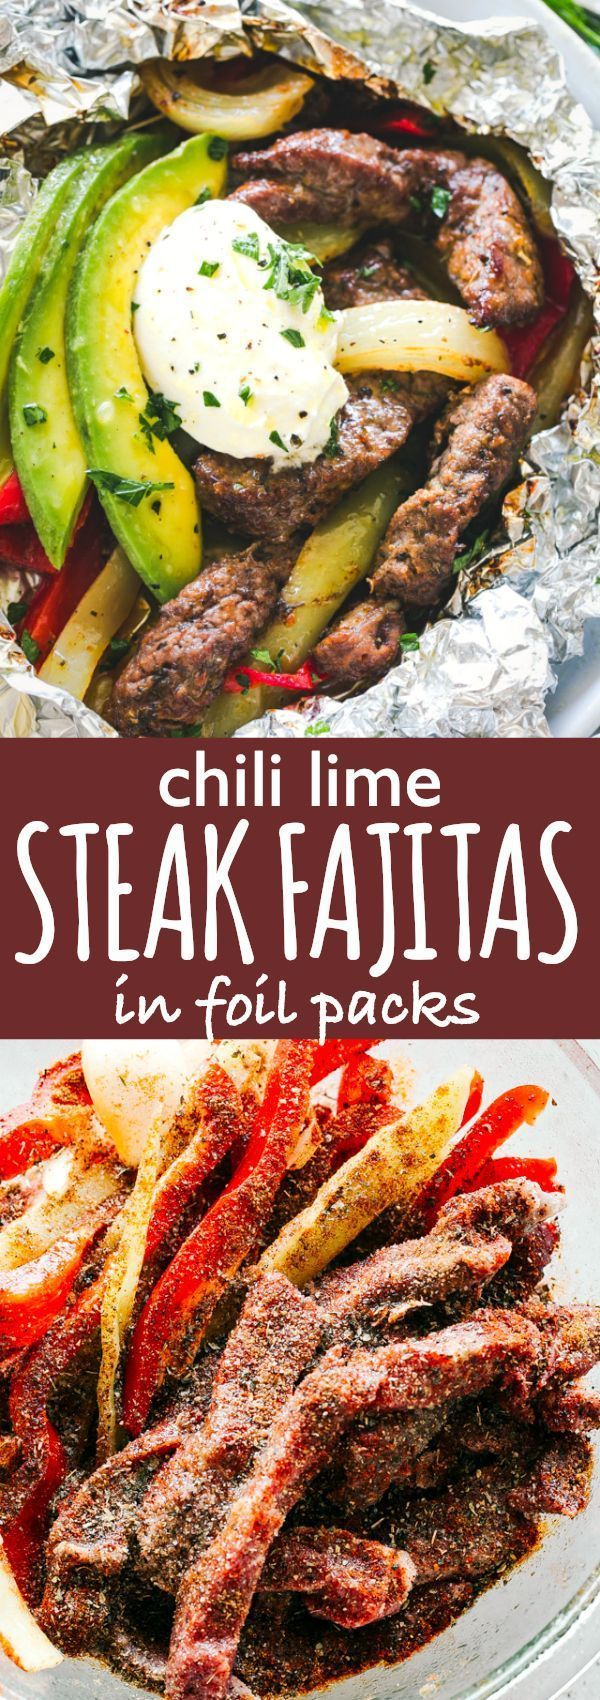 Chili Lime Steak Fajitas in Foil Packs - Tender, flavorful, and very easy to make Chili Lime Steak Fajitas prepared in foil packs! This no fuss, fresh, and seriously delicious steak fajitas recipe is sure to be a major hit! #foilpackdinner #steak #fajitas #lowcarb #keto #dinnerrecipes via @diethood #steakfajitarecipe